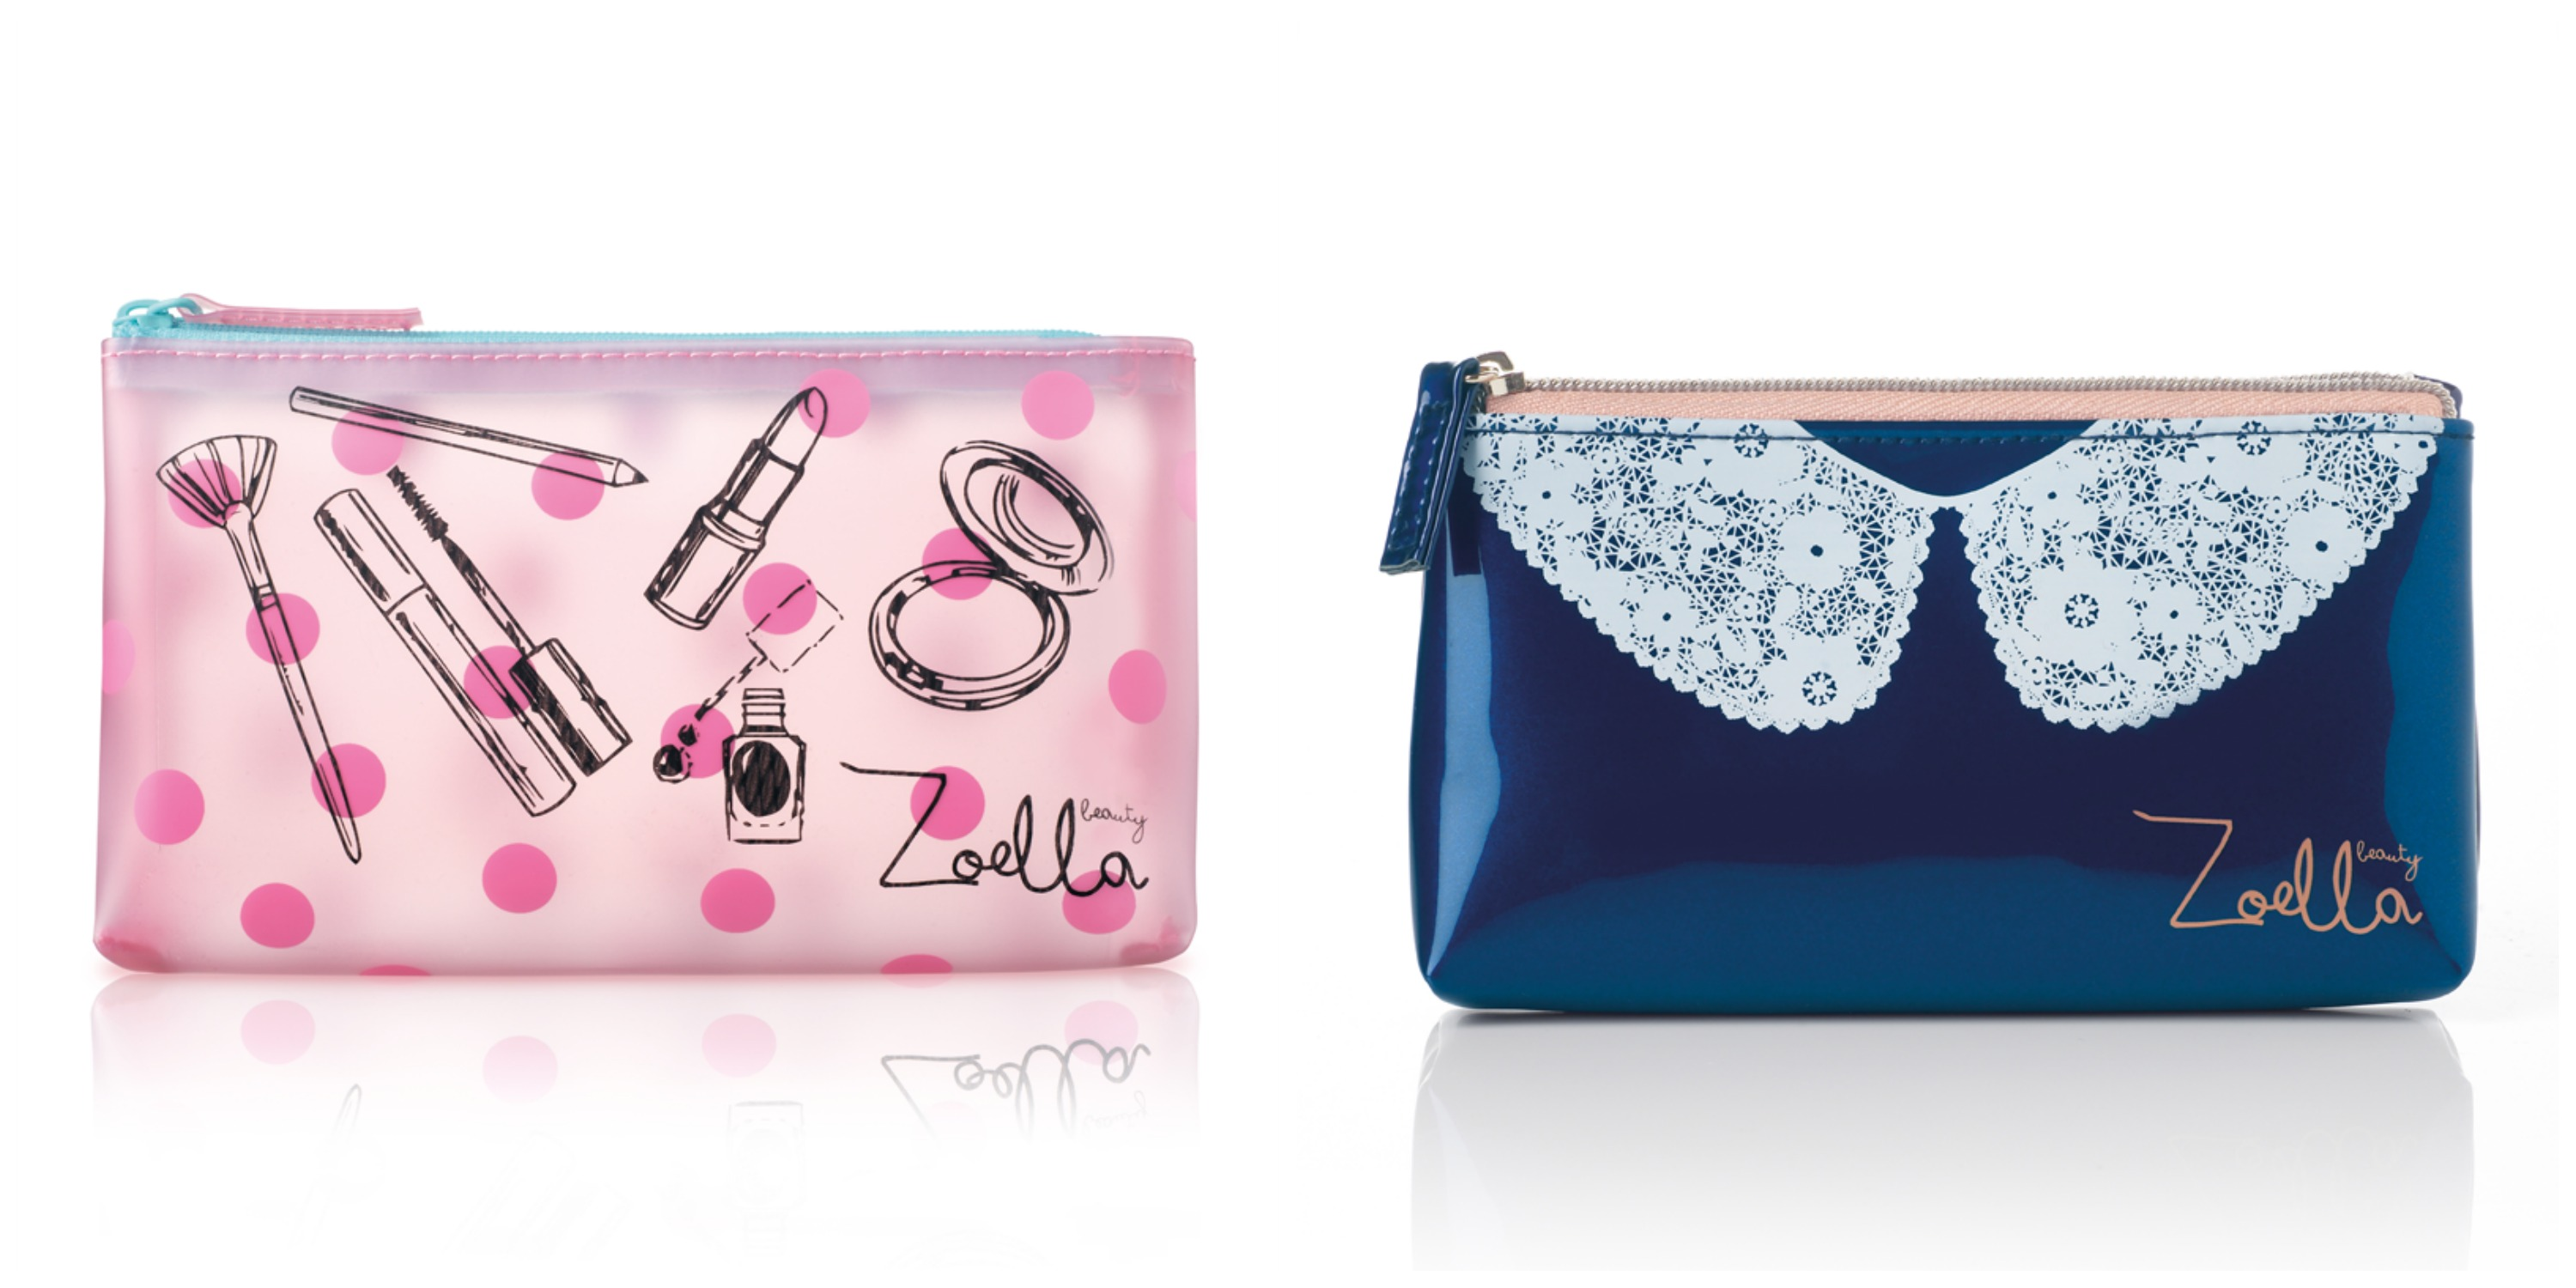 Zoella Blue Makeup Bag Saubhaya